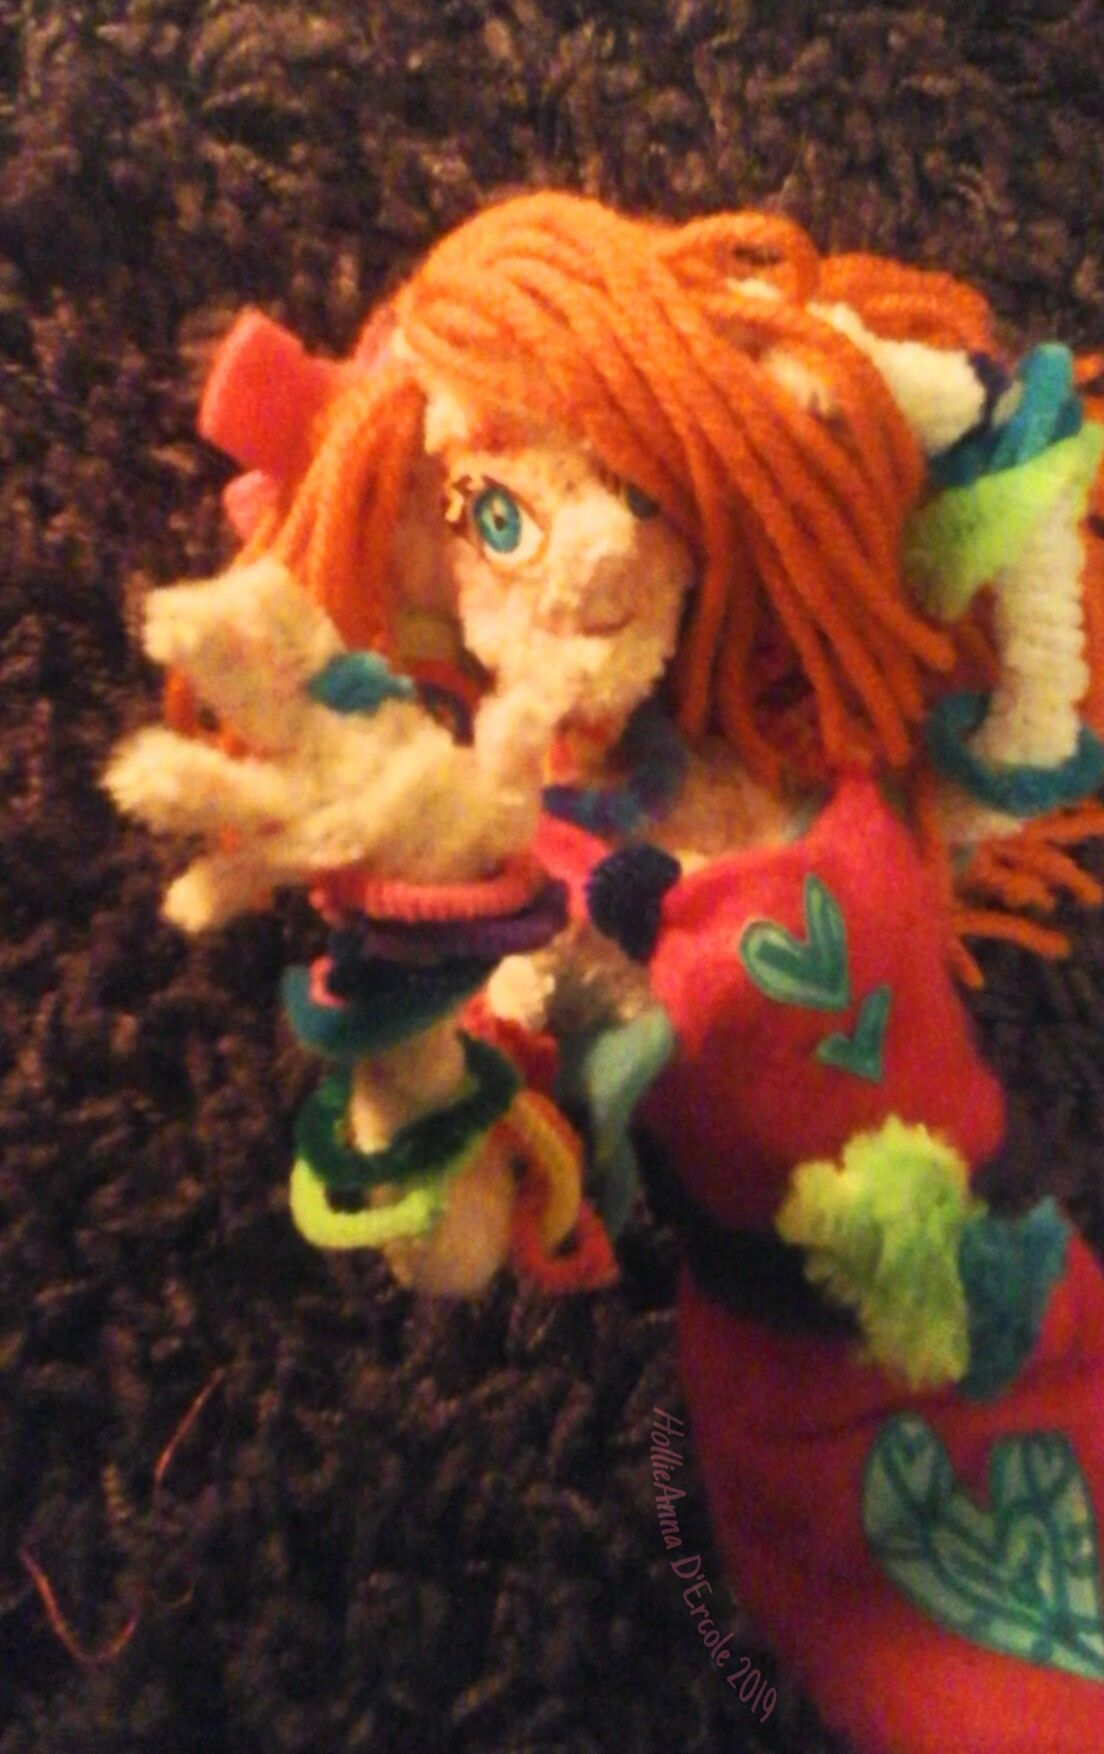 Bea Ana,  the spunky rainbow lover. Doll made by me.  #madebyme #pipecleaner #drawnbyme  #freetoedit #holiztridodi #hollipolliyozza